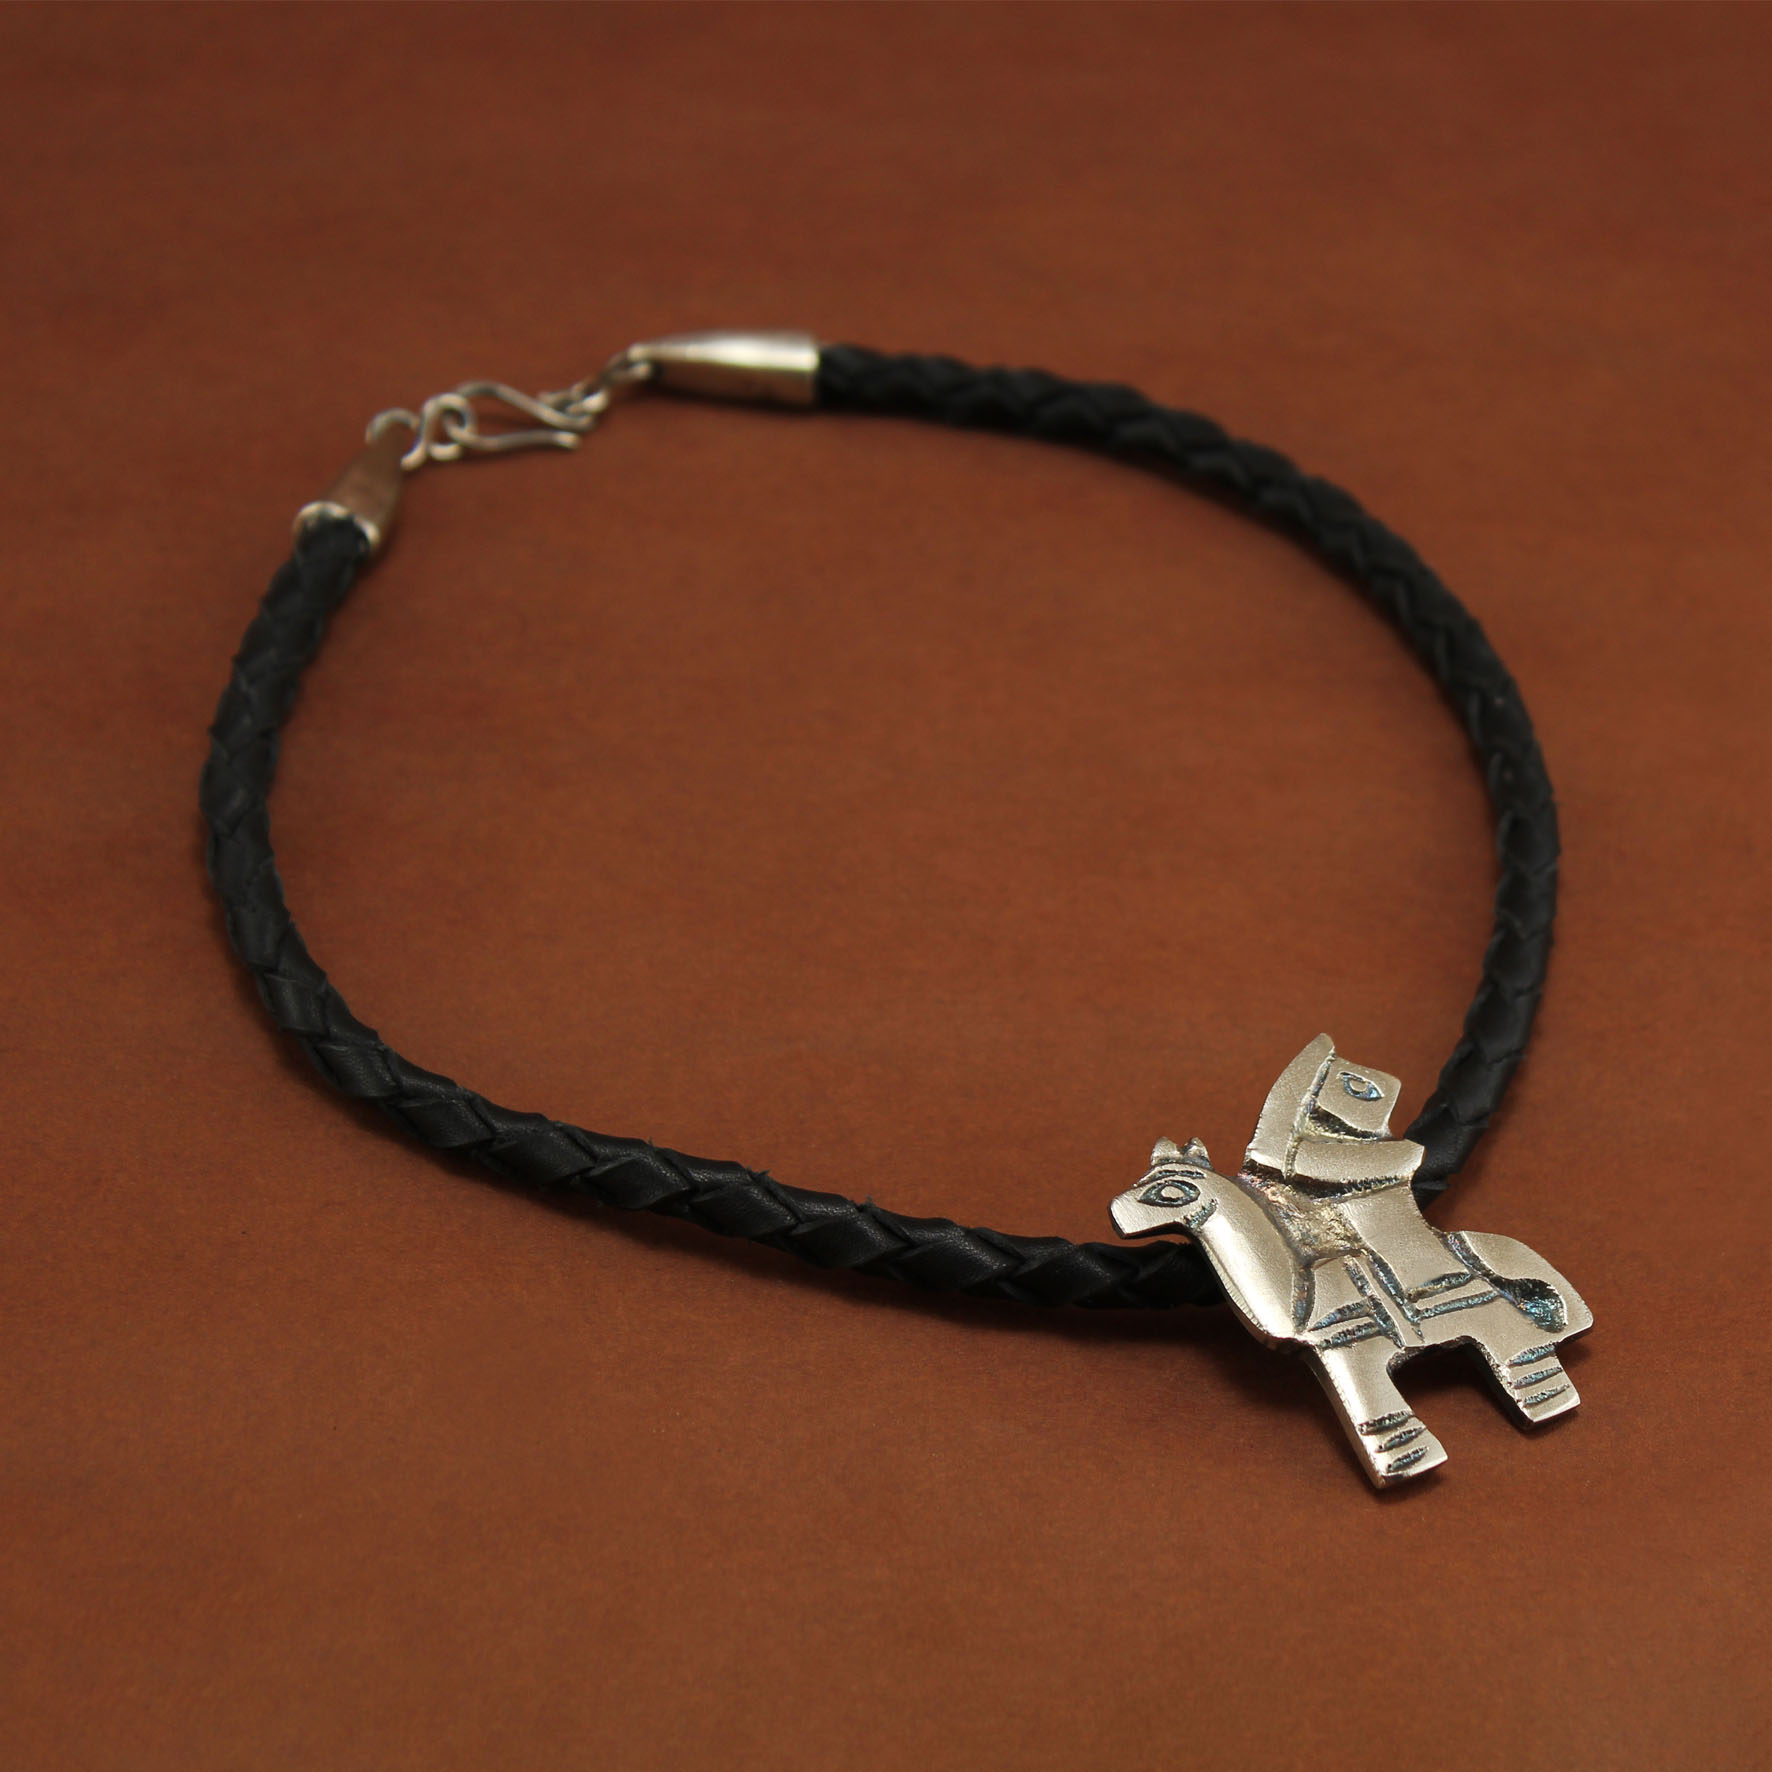 Braided Abu Zeid El Helaly Necklace